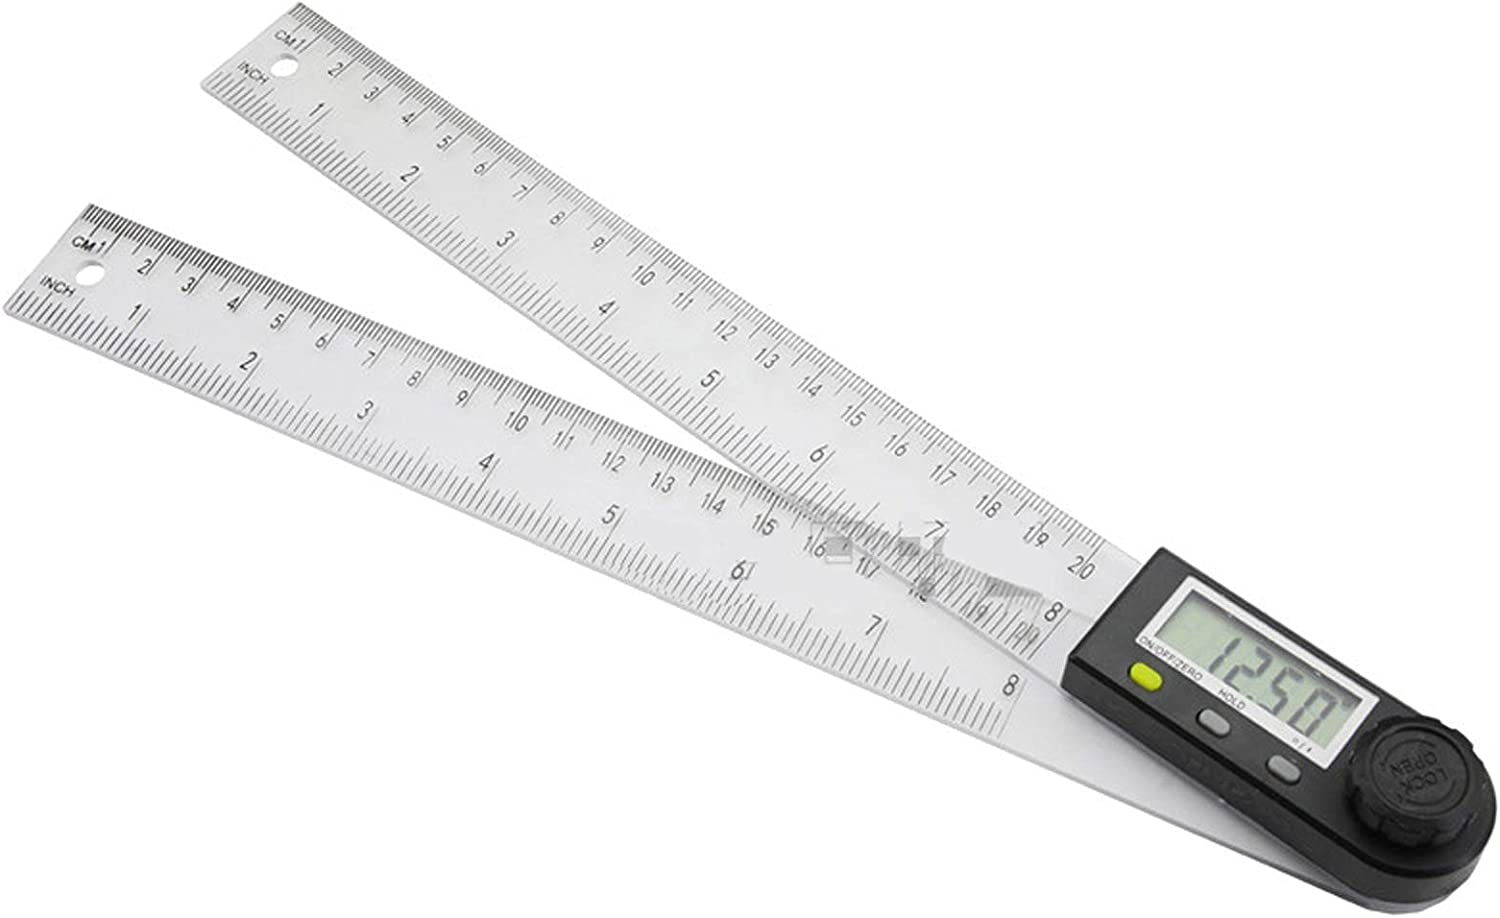 BUNANA 2 in 1 Digital Protractor 300mm New York Mall 50mm Stainles Ranking TOP6 200 Mm